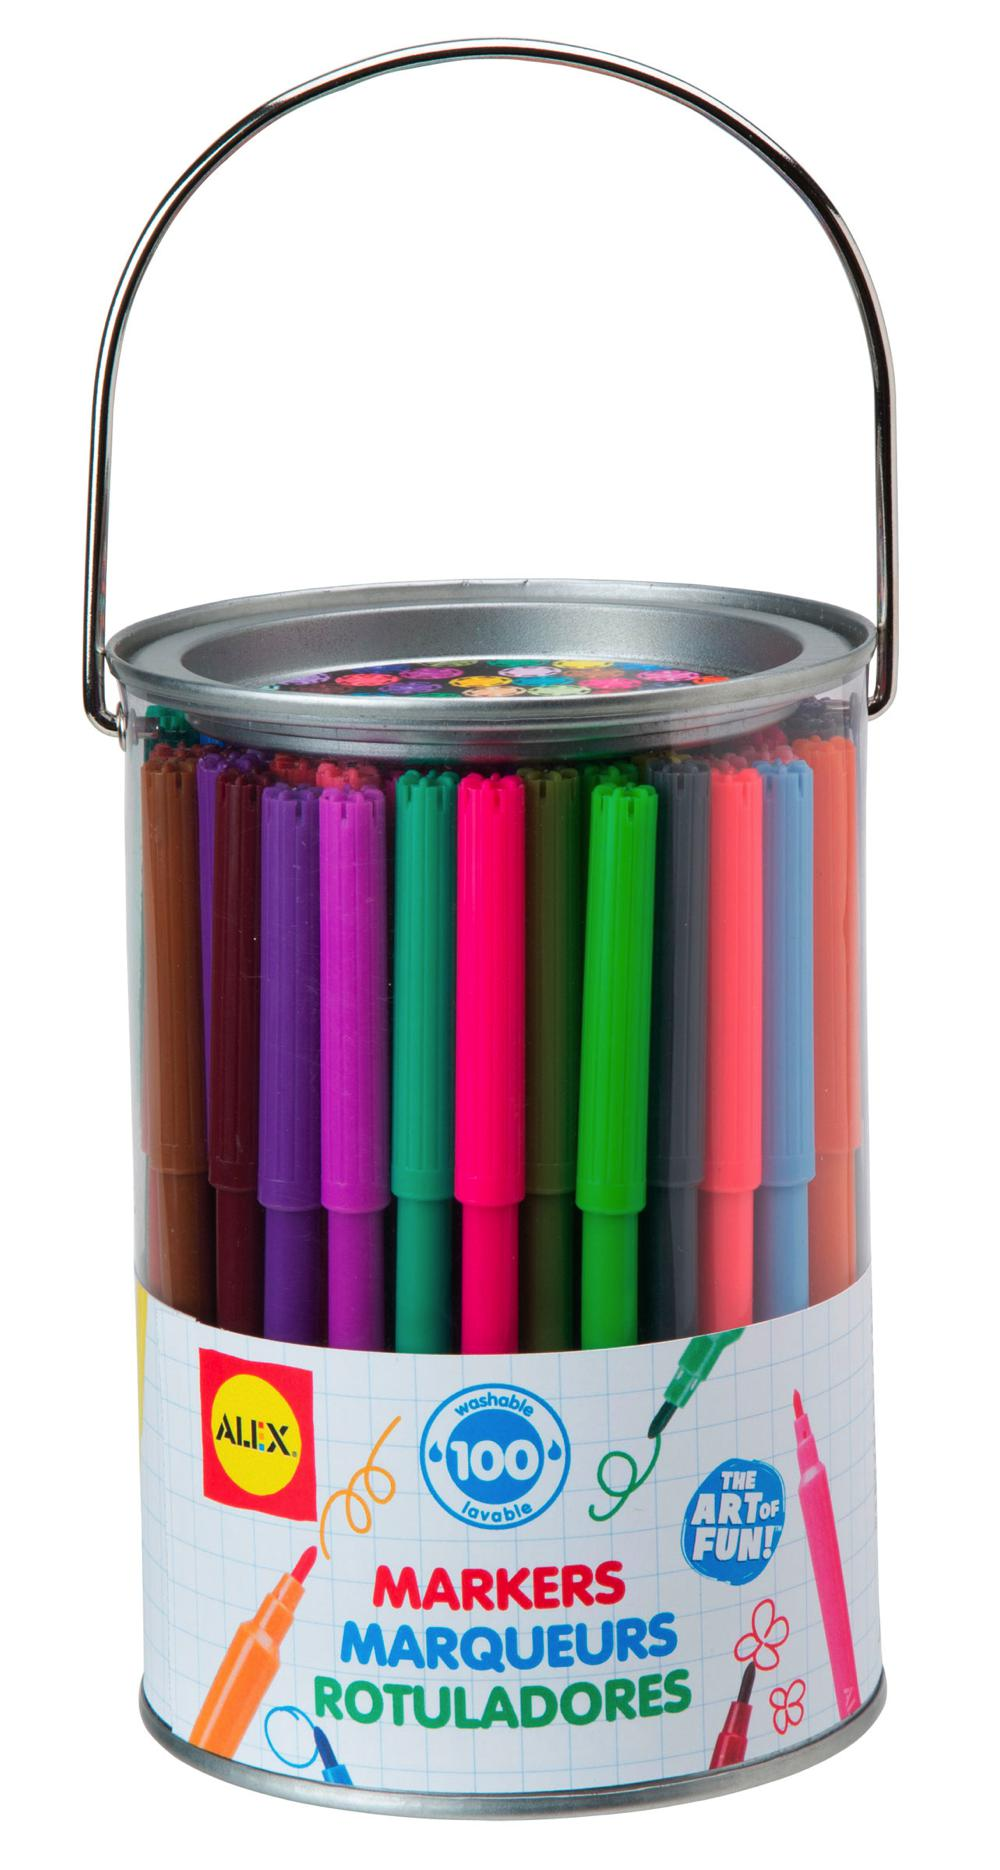 100 Markers 1490$